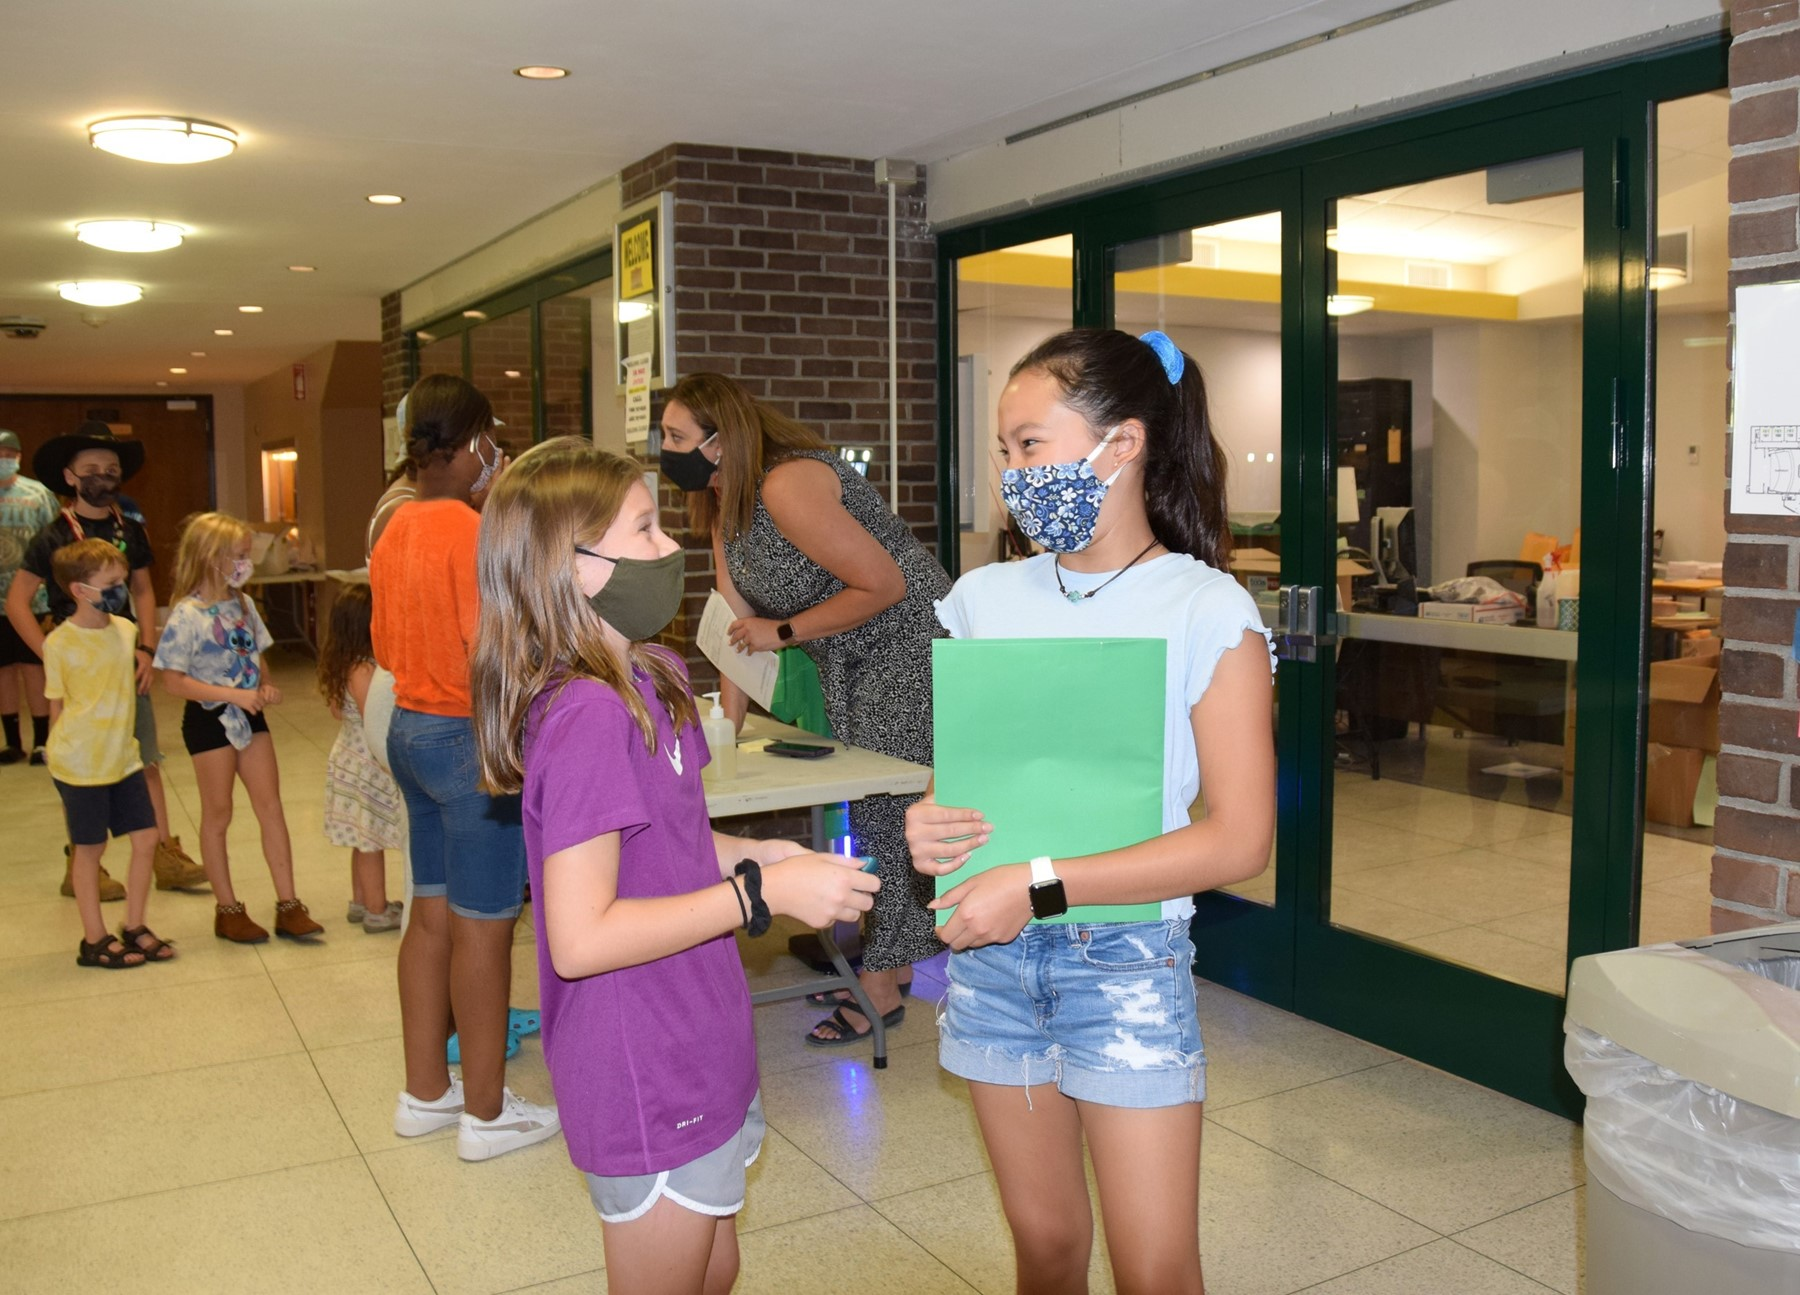 Two Vestal Middle School students, both girls, catch up during building-access time two days before school starts.